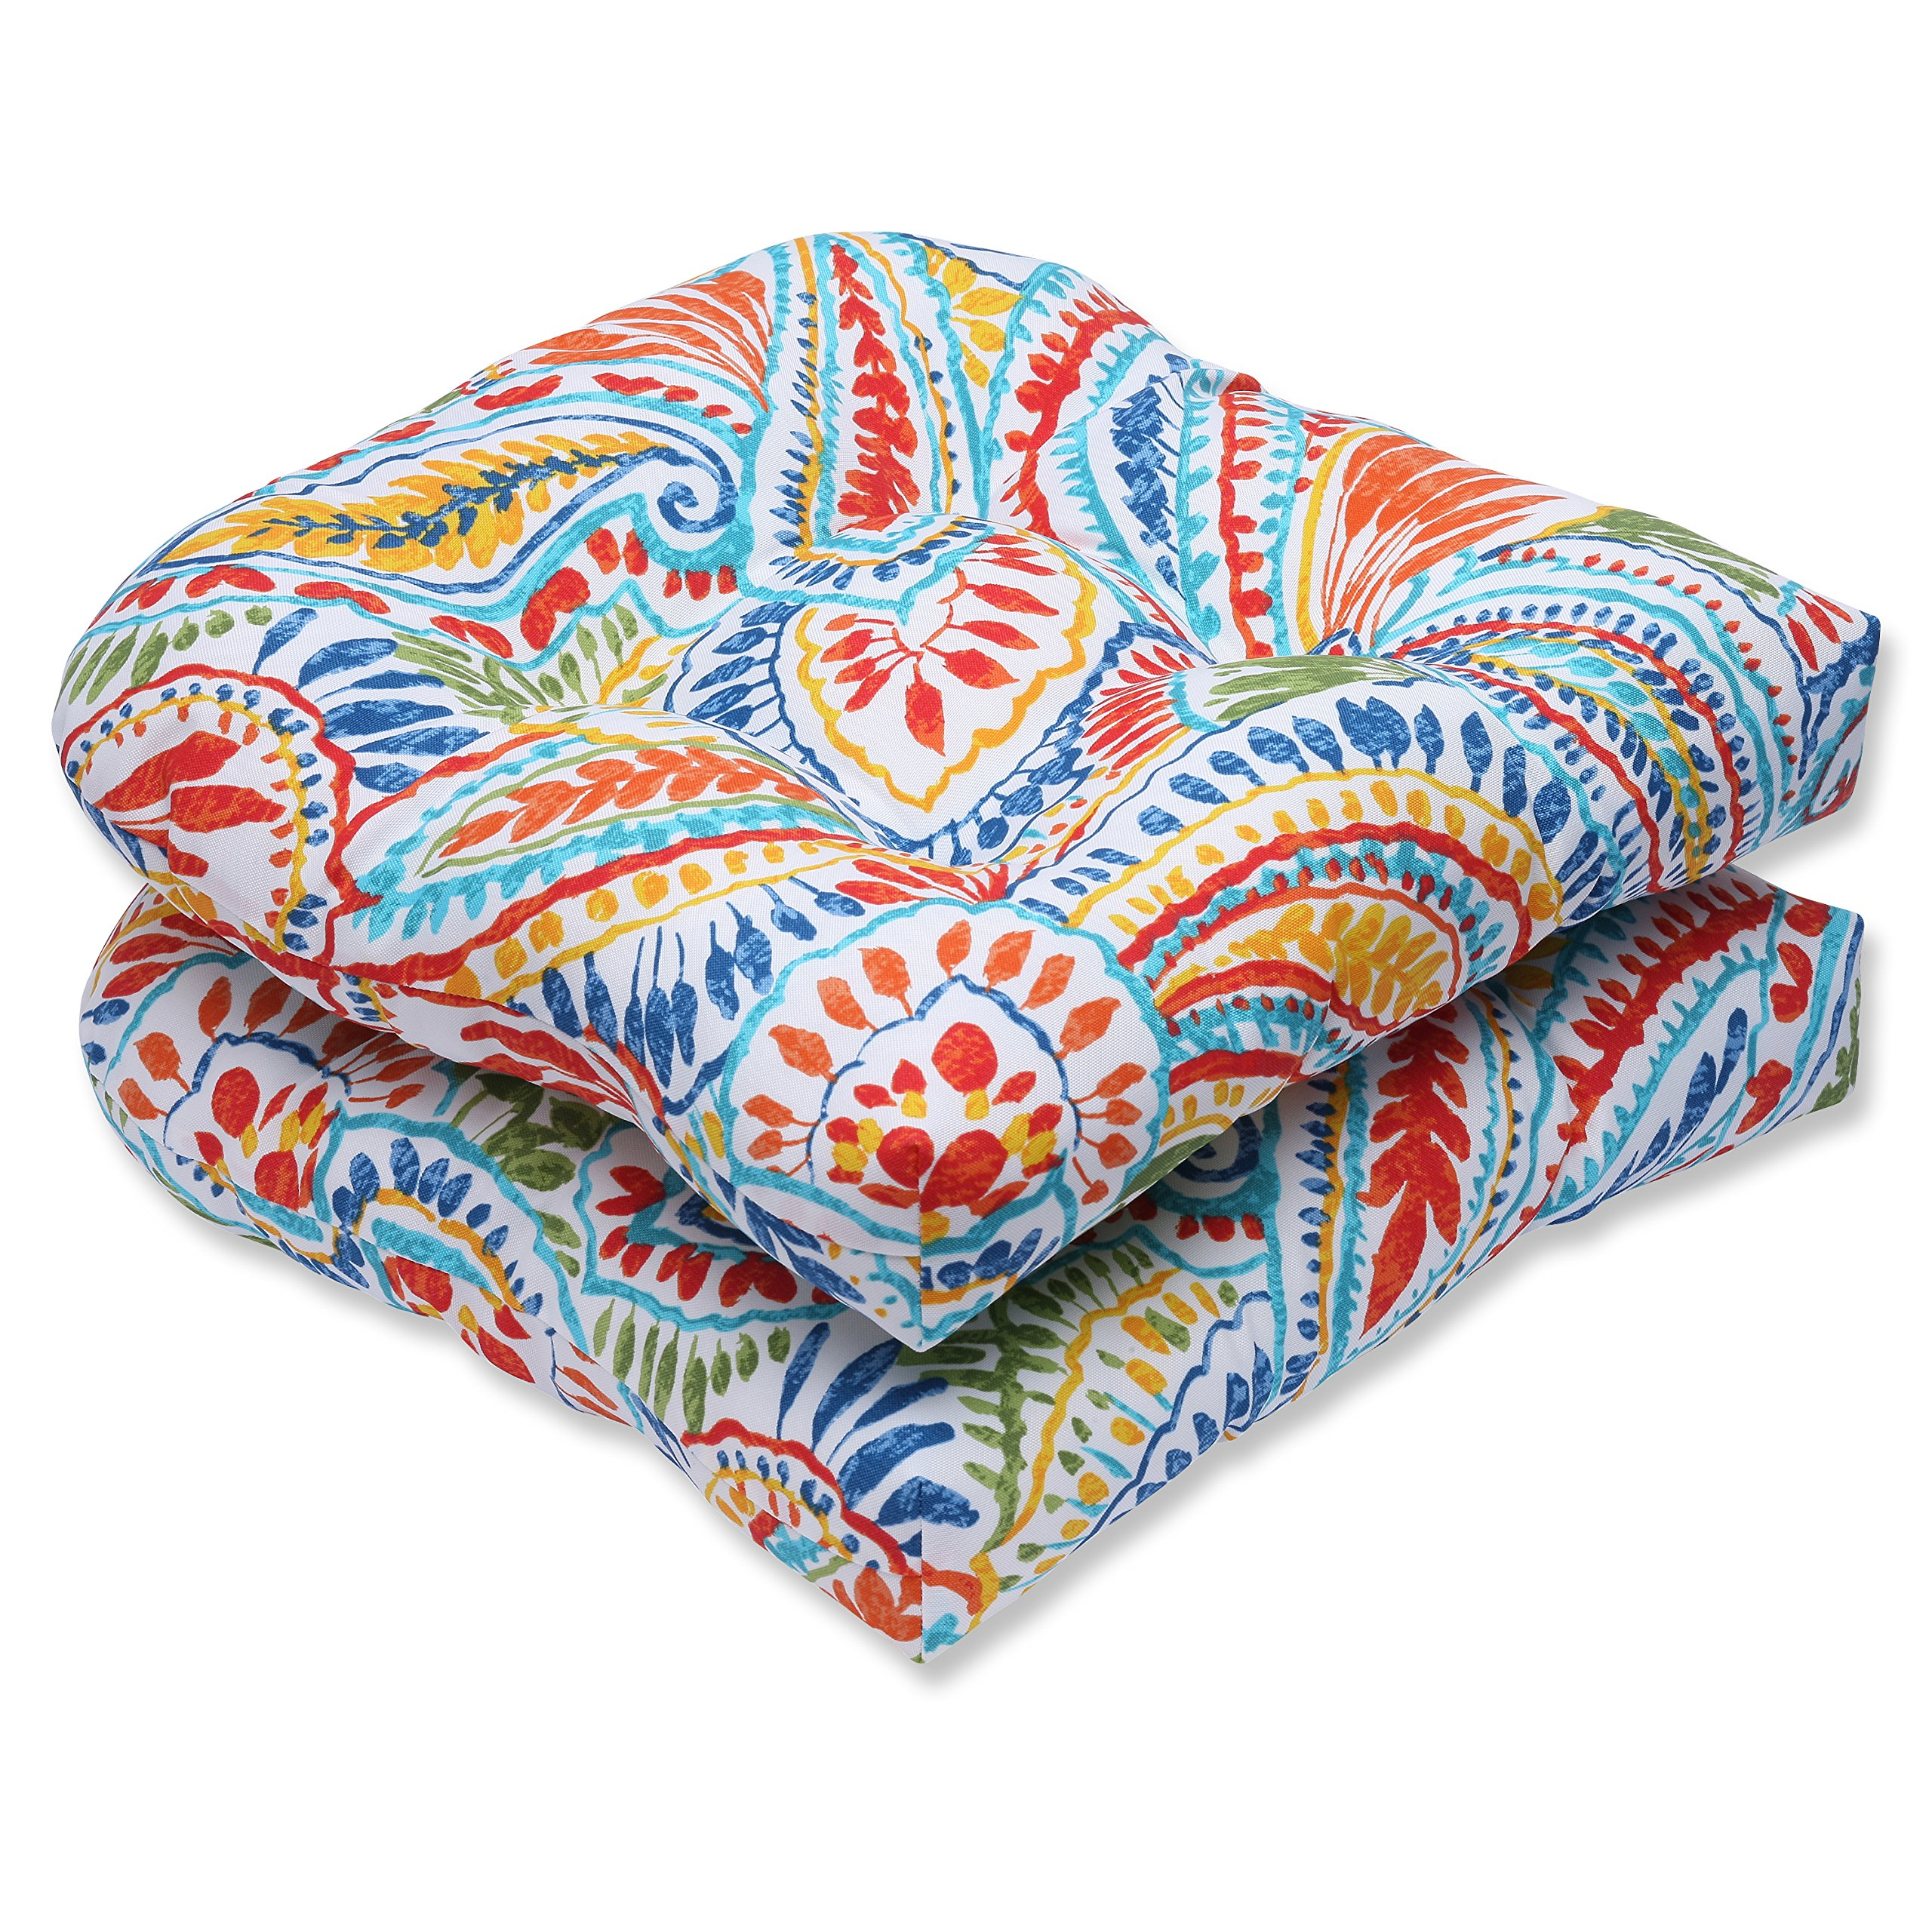 Pillow Perfect Outdoor Ummi Wicker Seat Cushion, Multicolored, Set of 2 by Pillow Perfect (Image #1)